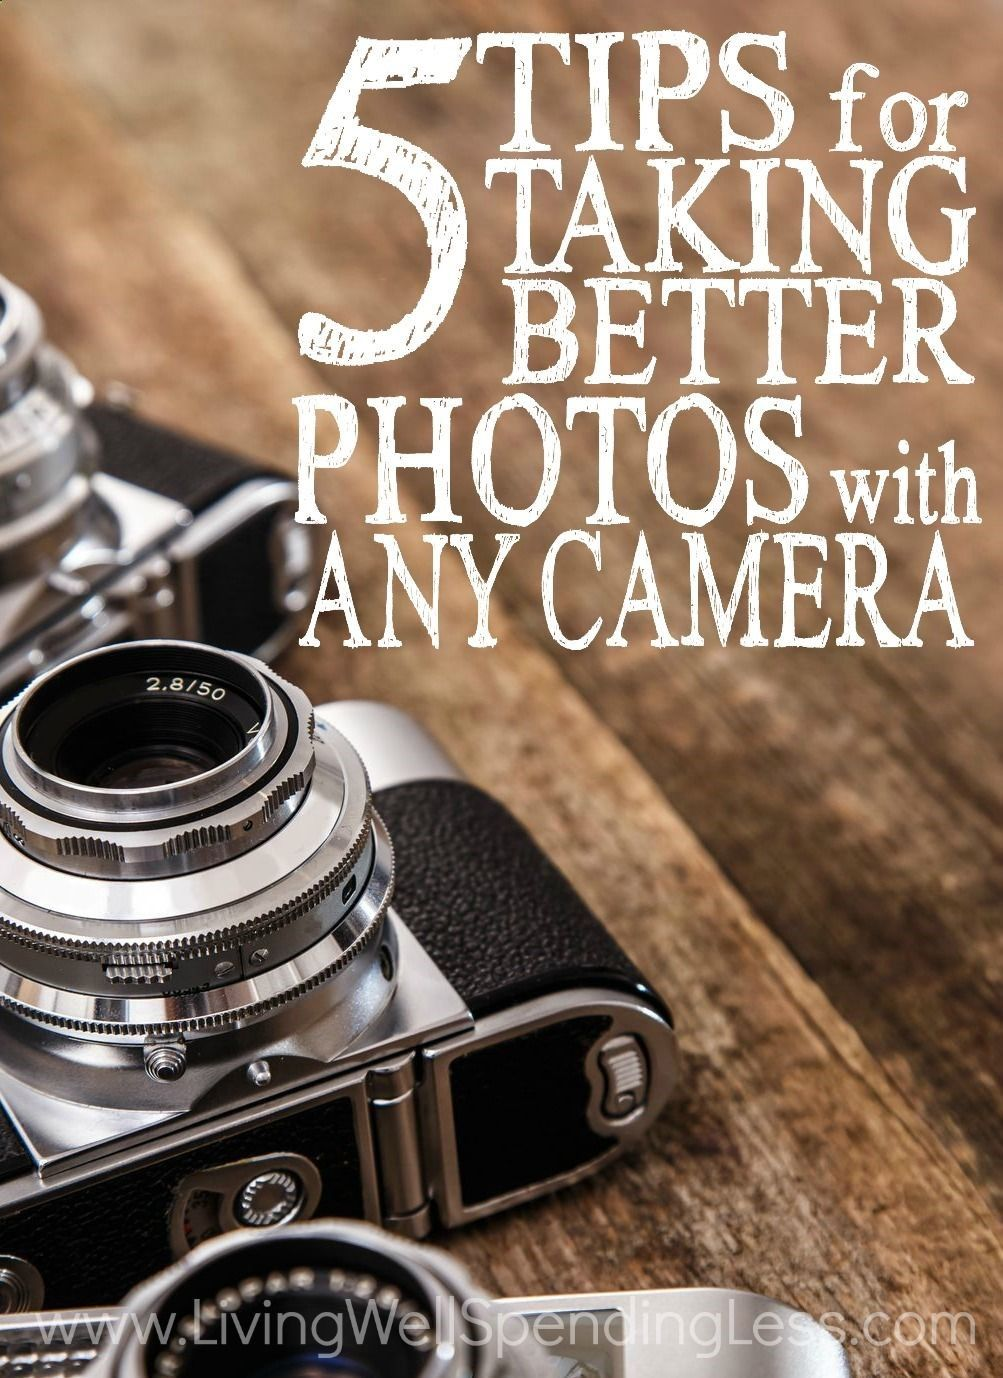 Better Pictures - To Take Better Pictures - Ever wish you could take better photos, even if just with your phone? The truth is that good photography is more about the photographer than the camera, and ANYONE can take better photos! Dont miss these 5 simple tips for taking better photos with any camera! - To anybody wanting to take better photographs today To anybody wanting to take better photographs today